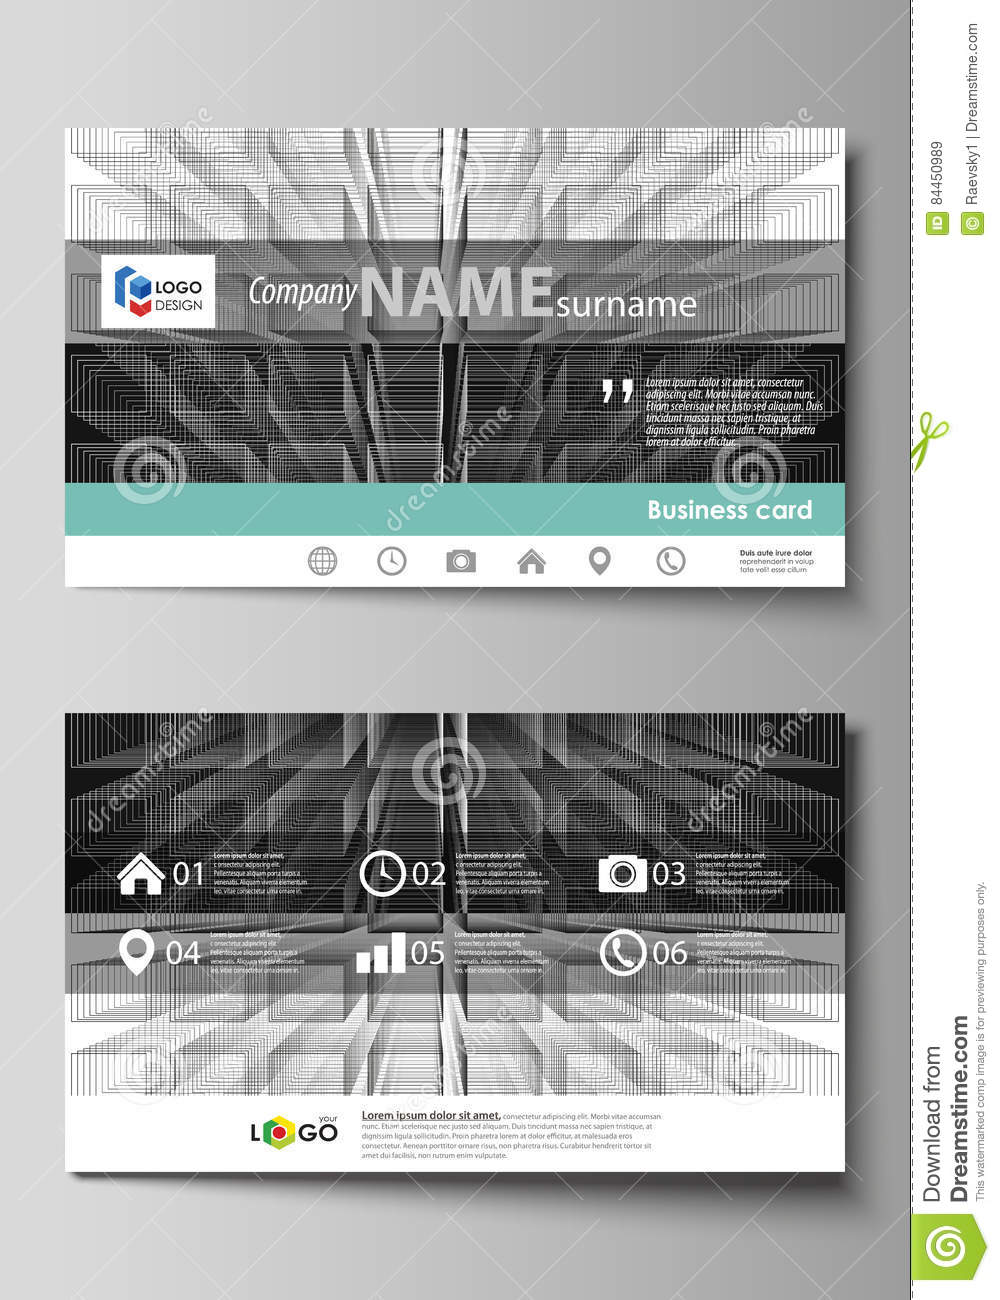 Business card templates easy editable layout vector design business card templates easy editable layout vector design template abstract infinity background 3d structure with reheart Choice Image